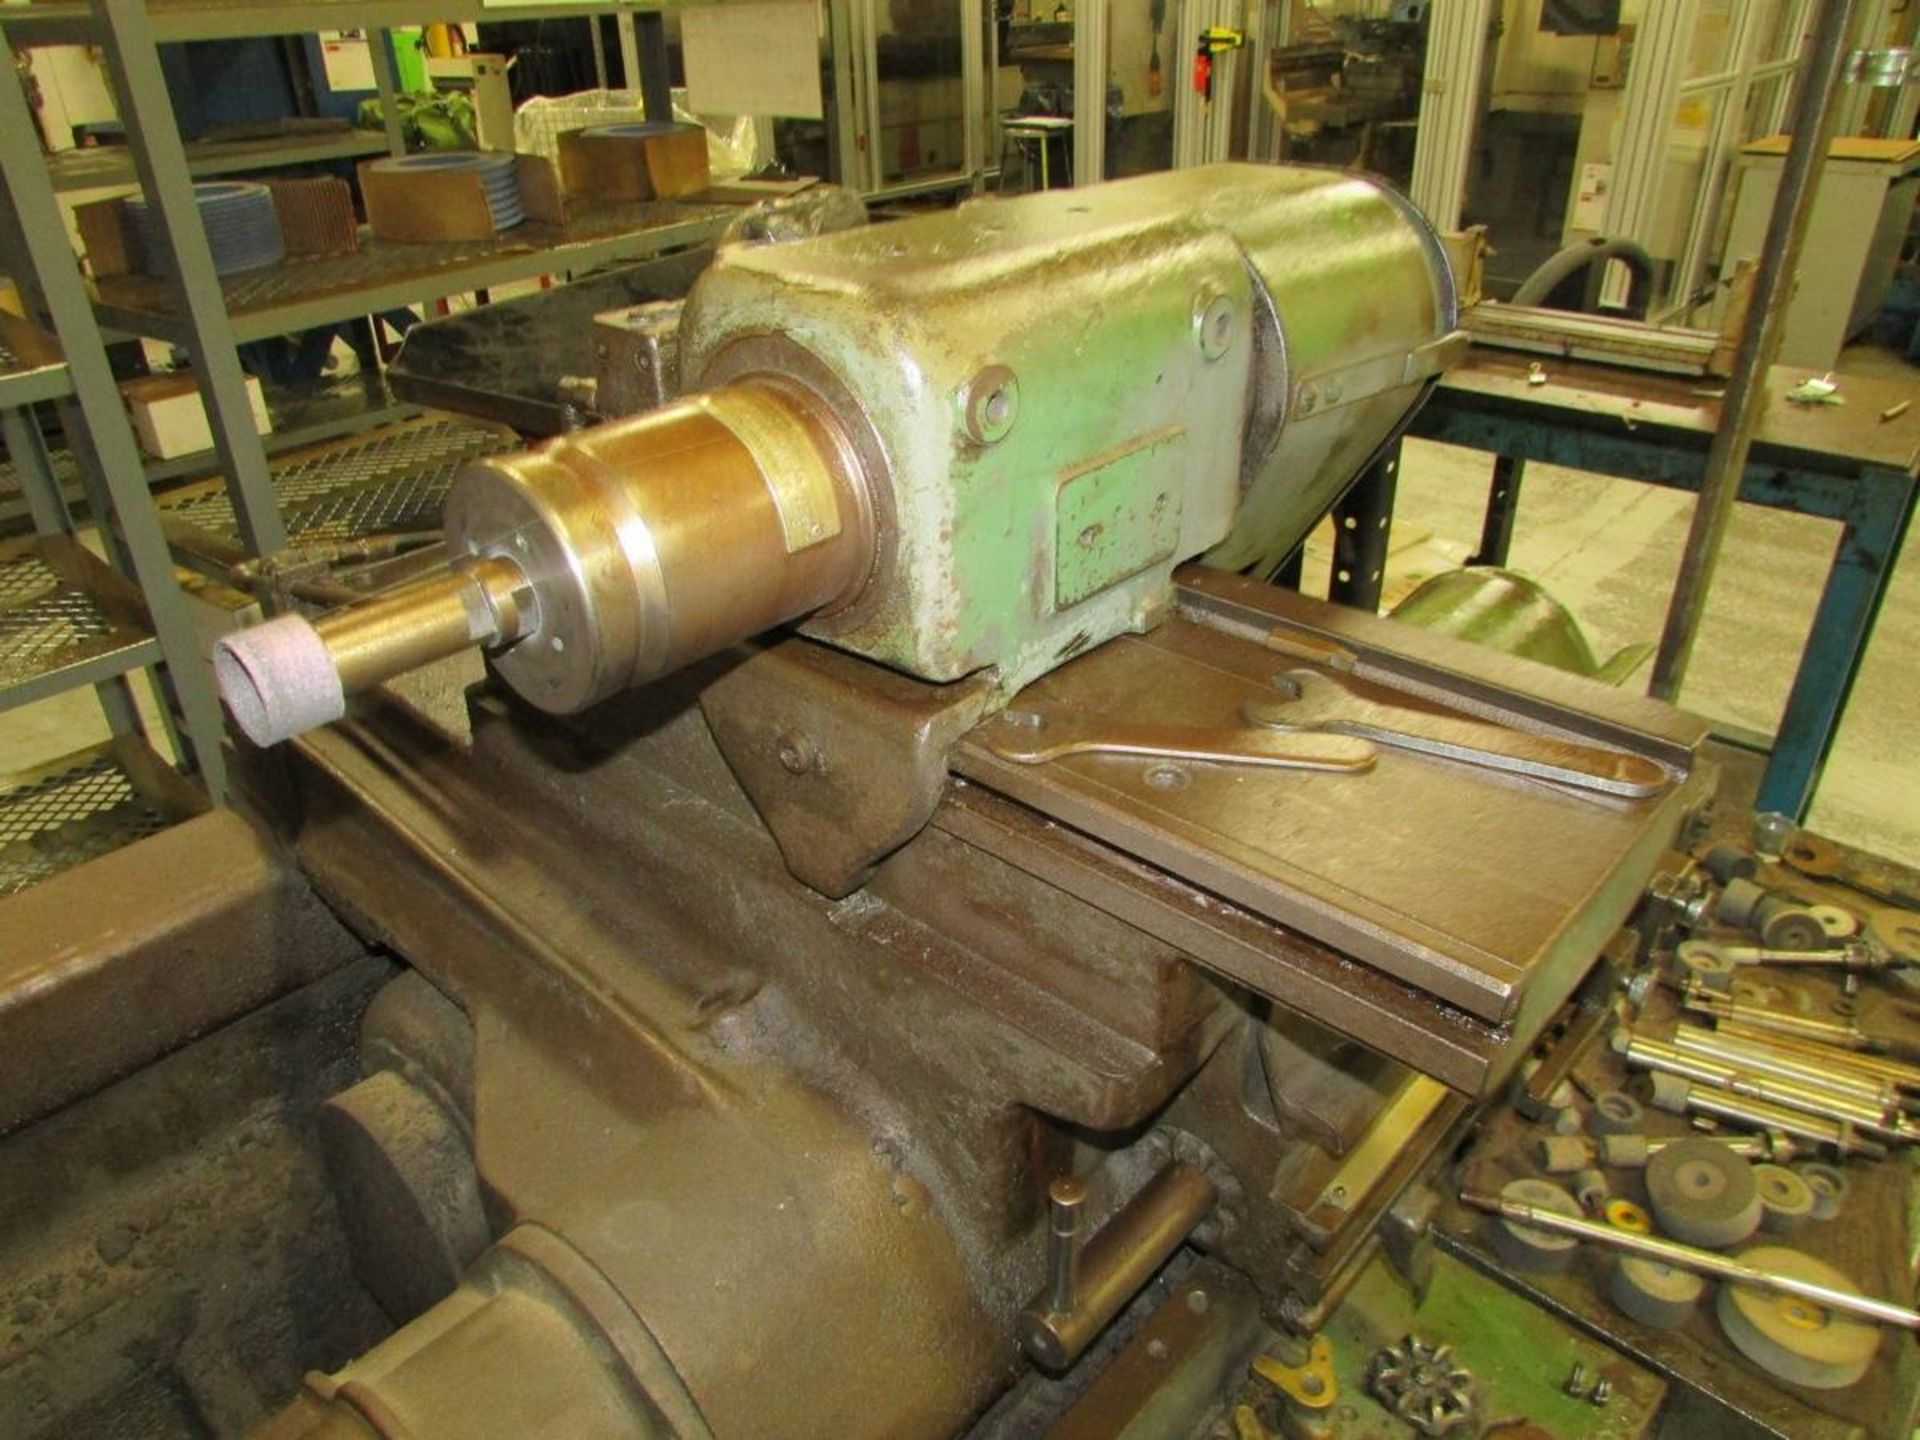 1981 Bryant 1116 ID Cylindrical Grinder - Image 9 of 20